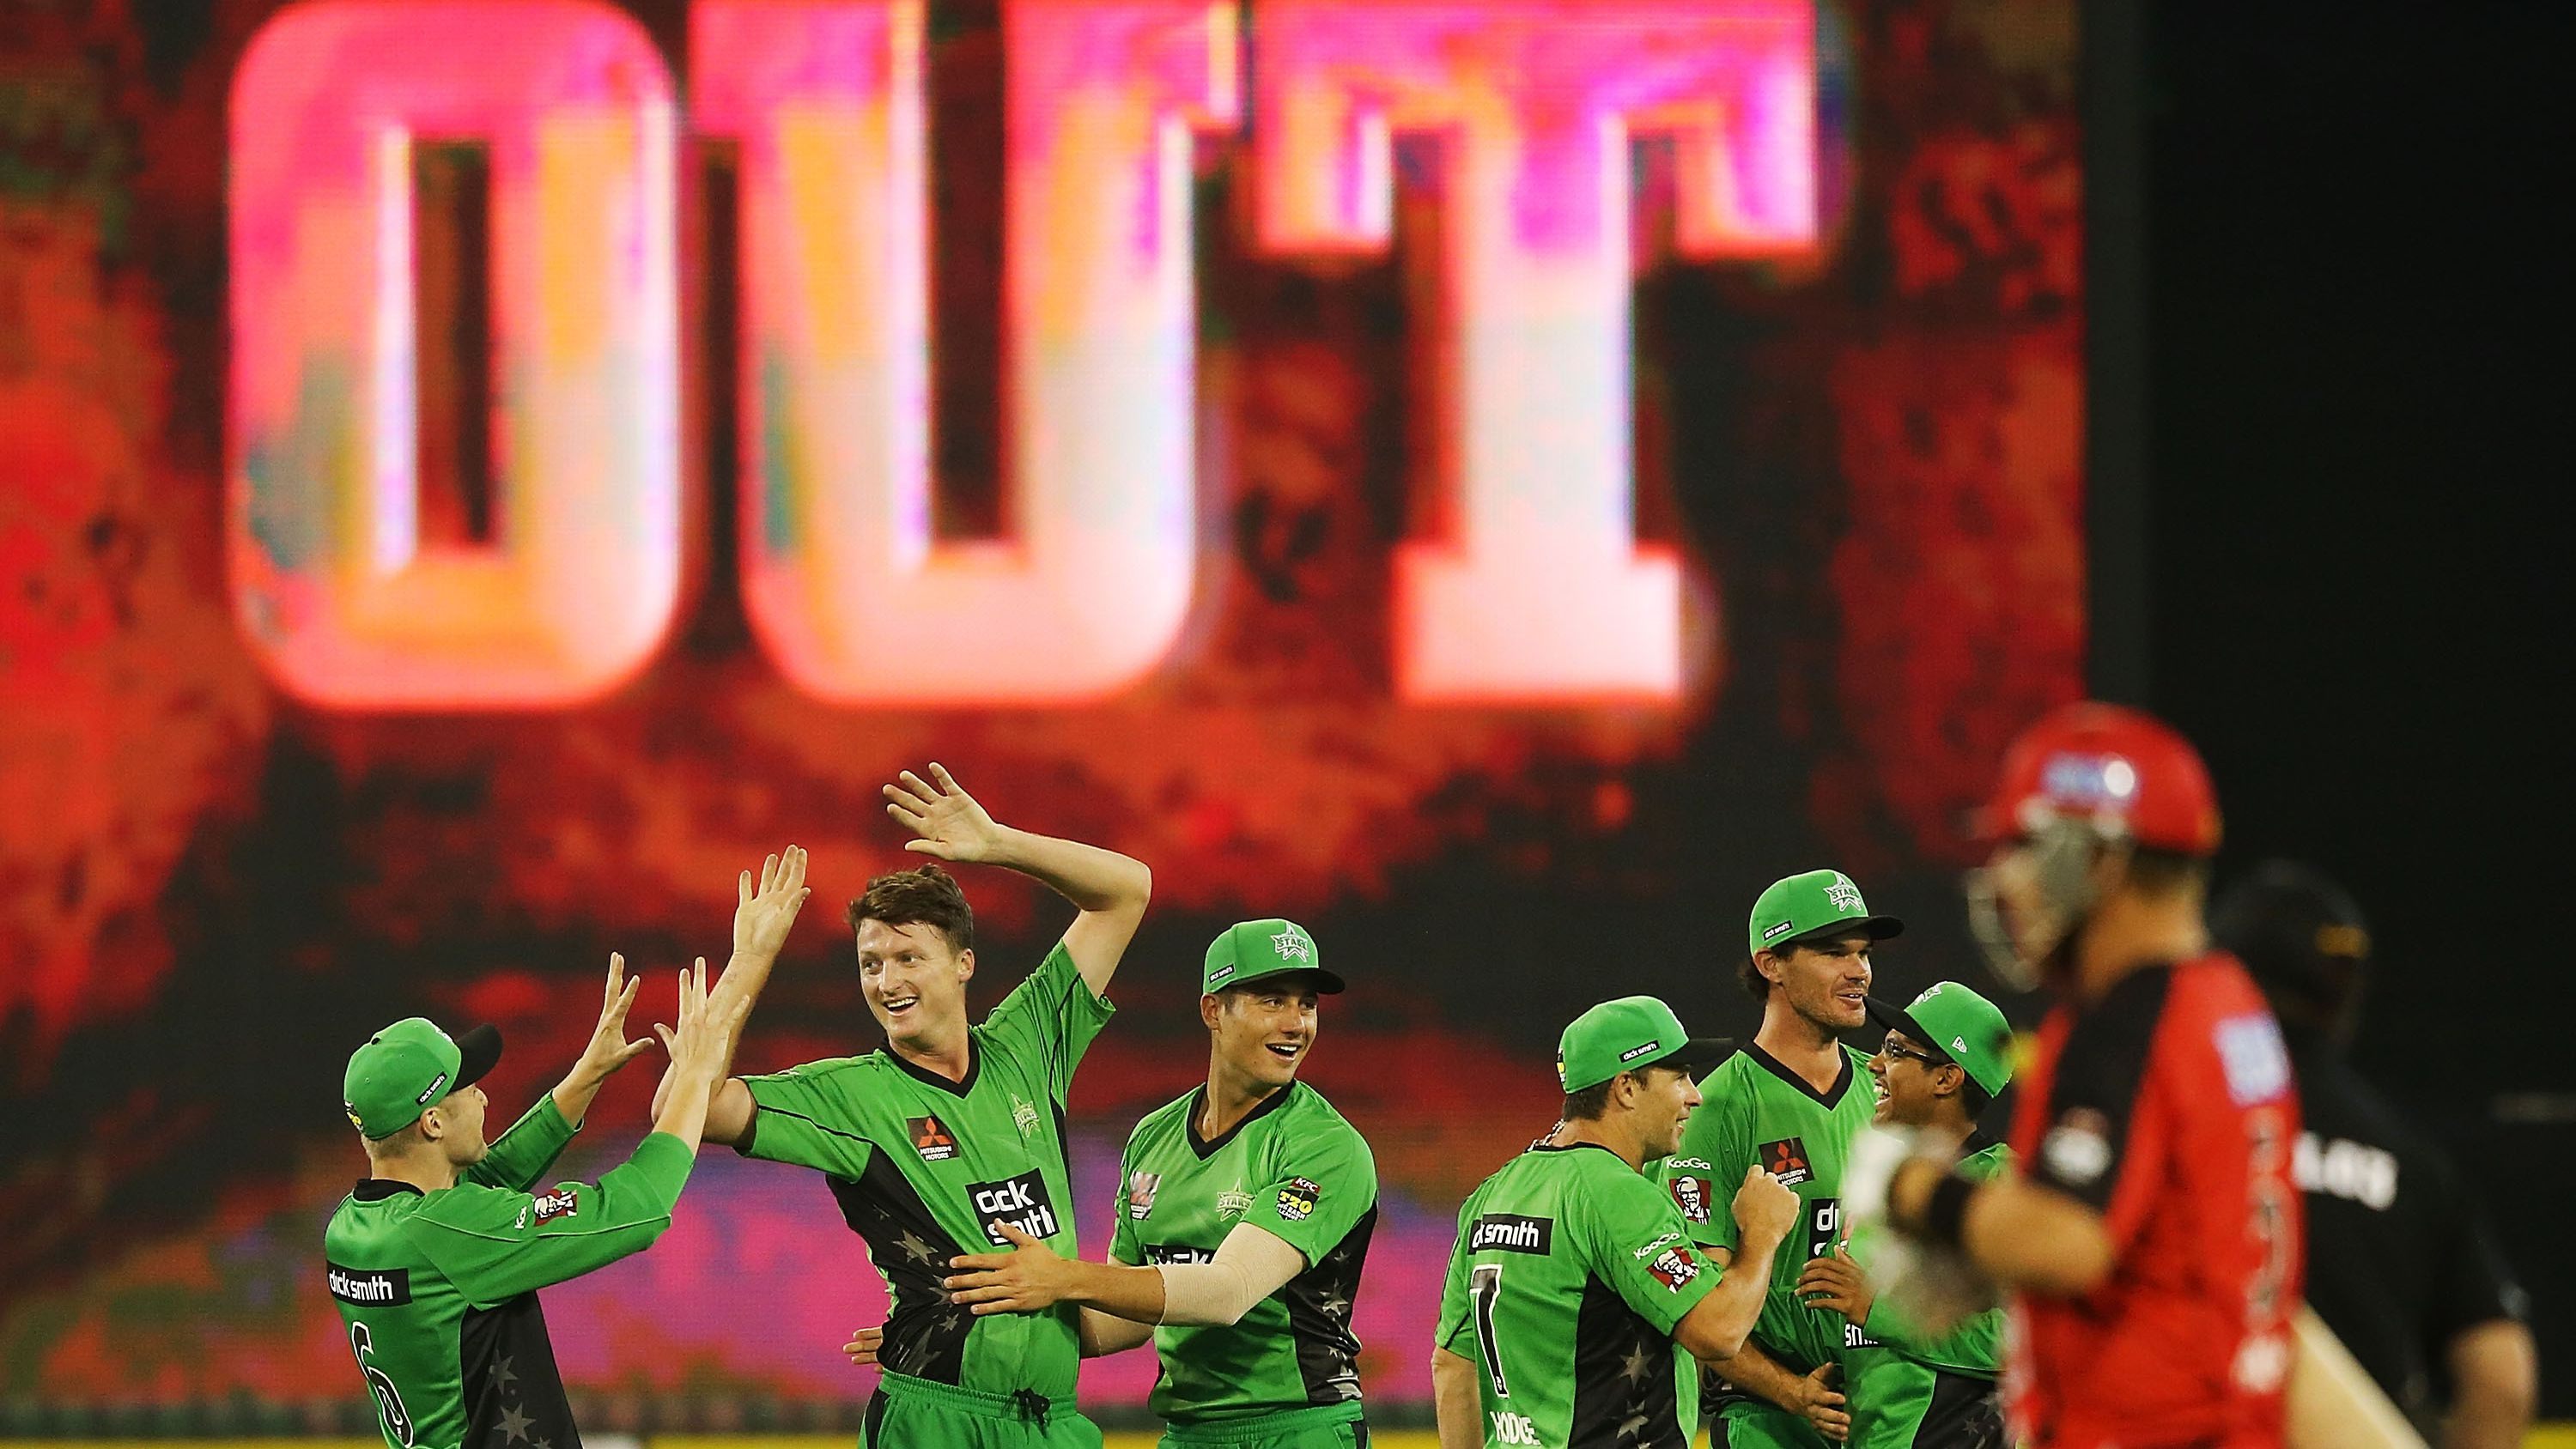 The BBL's two Melbourne teams will continue to use Australia Day in their promotions